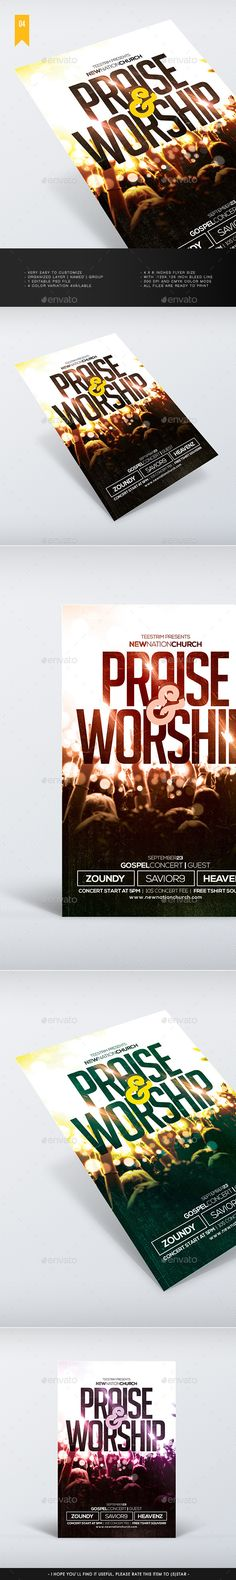 Praise And Worship - Church Flyer Template #design Download: http://graphicriver.net/item/praise-and-worship-church-flyer/12285116?ref=ksioks